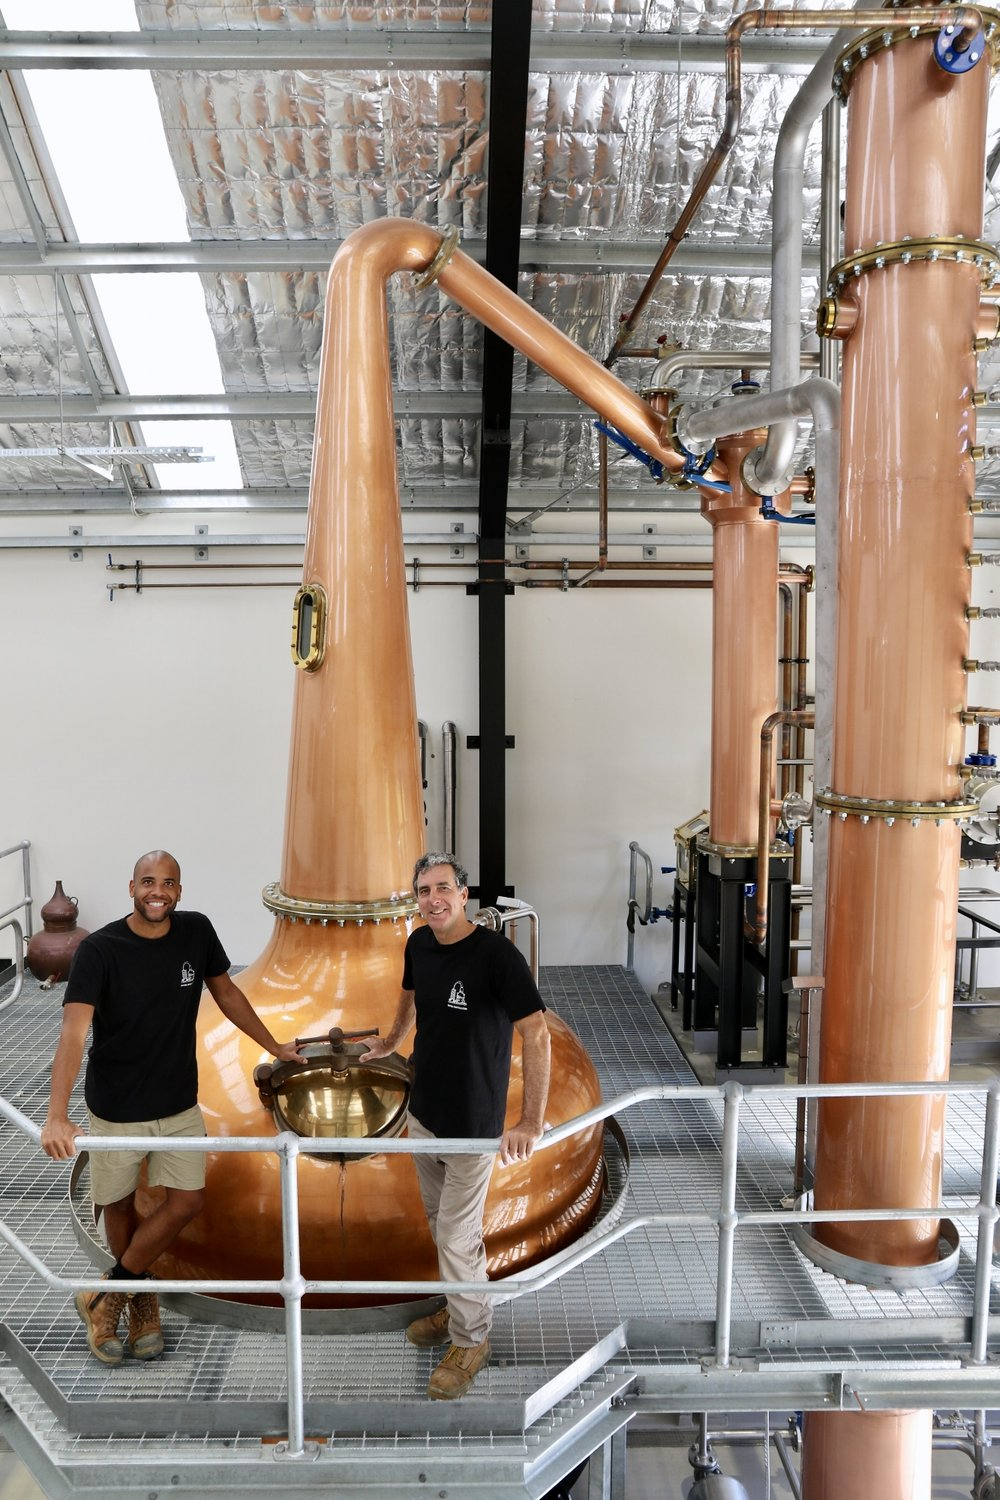 Quentin & Paul with our Forsyth Still. What a big fella! The still of course, not the distillers.